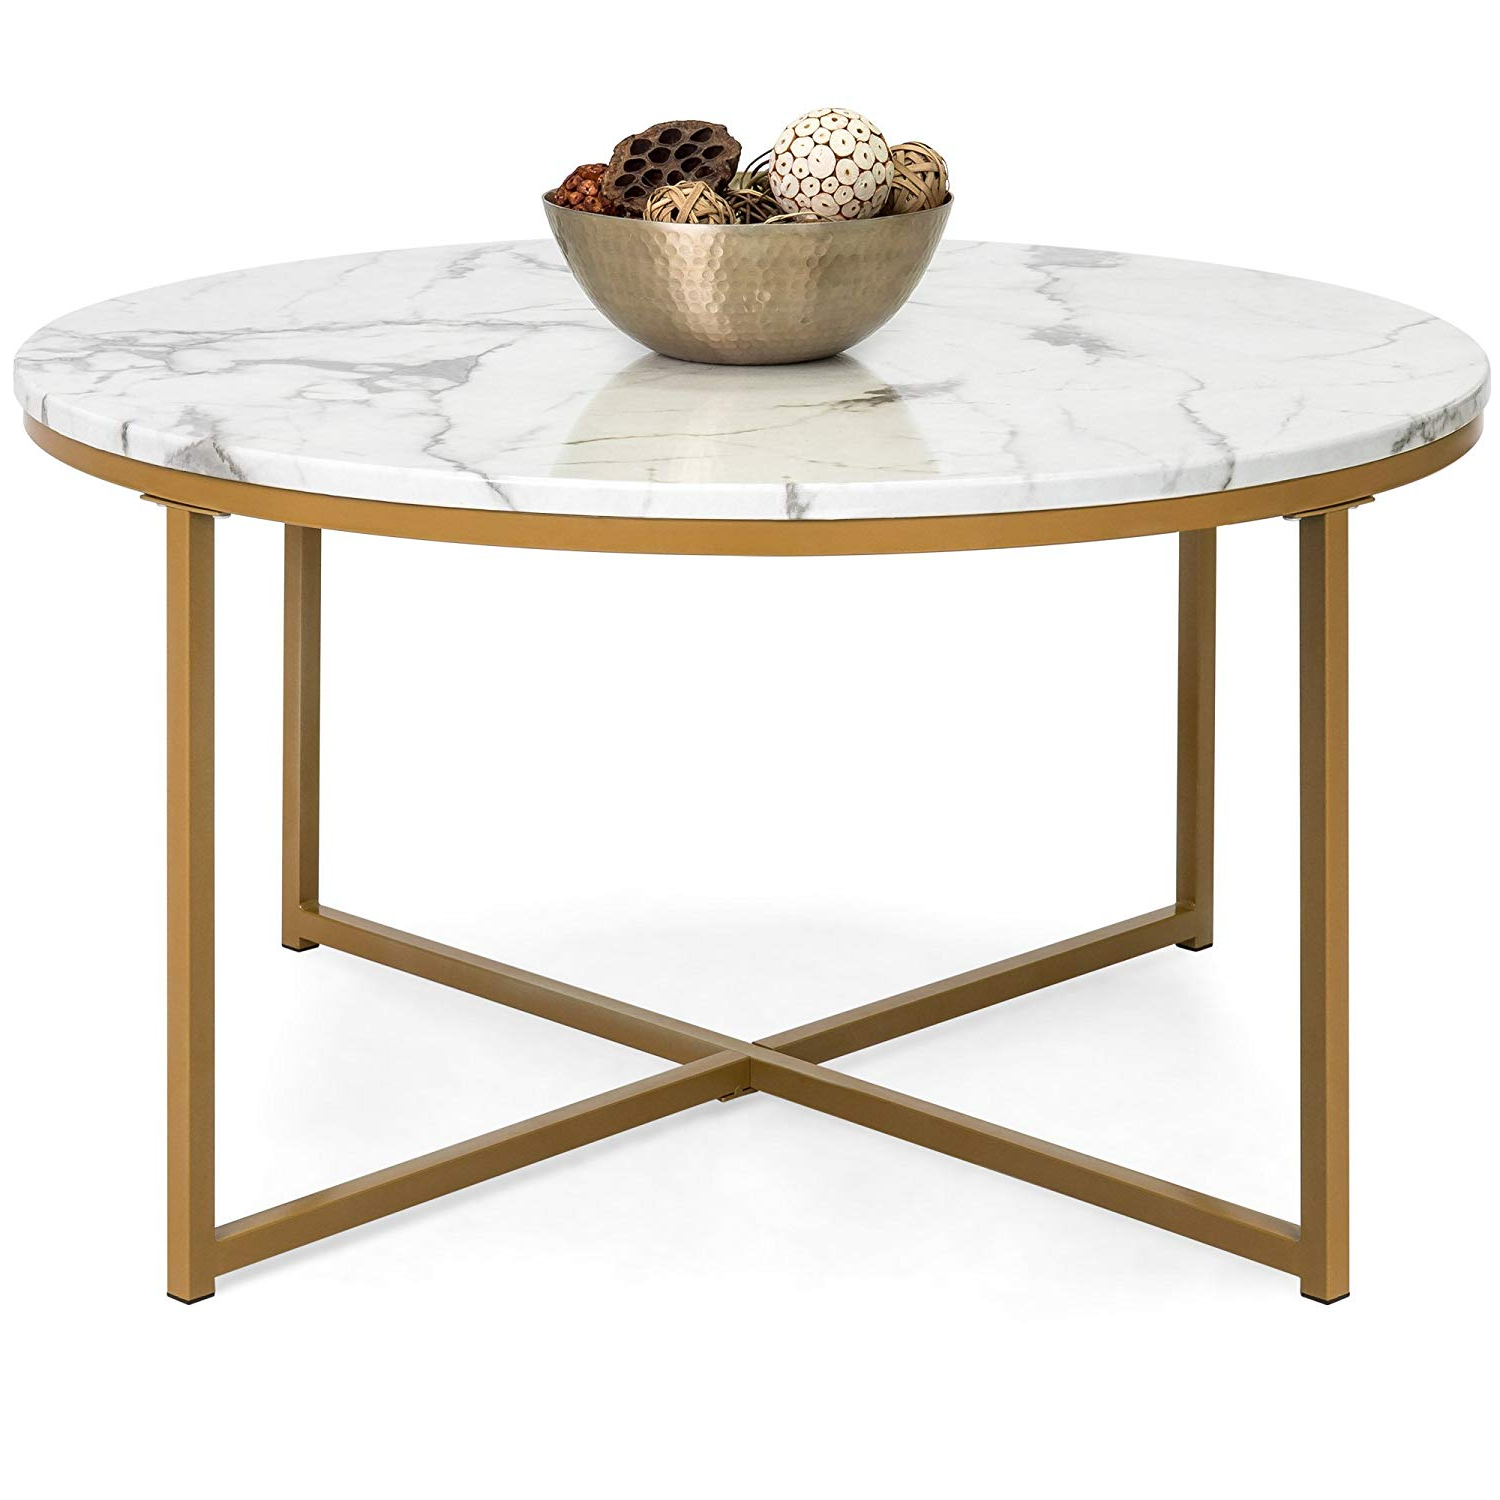 Modern Coffee Table With Gold Frame And Faux Marble Top Within Most Popular Faux Marble Finish Metal Contemporary Dining Tables (View 15 of 25)